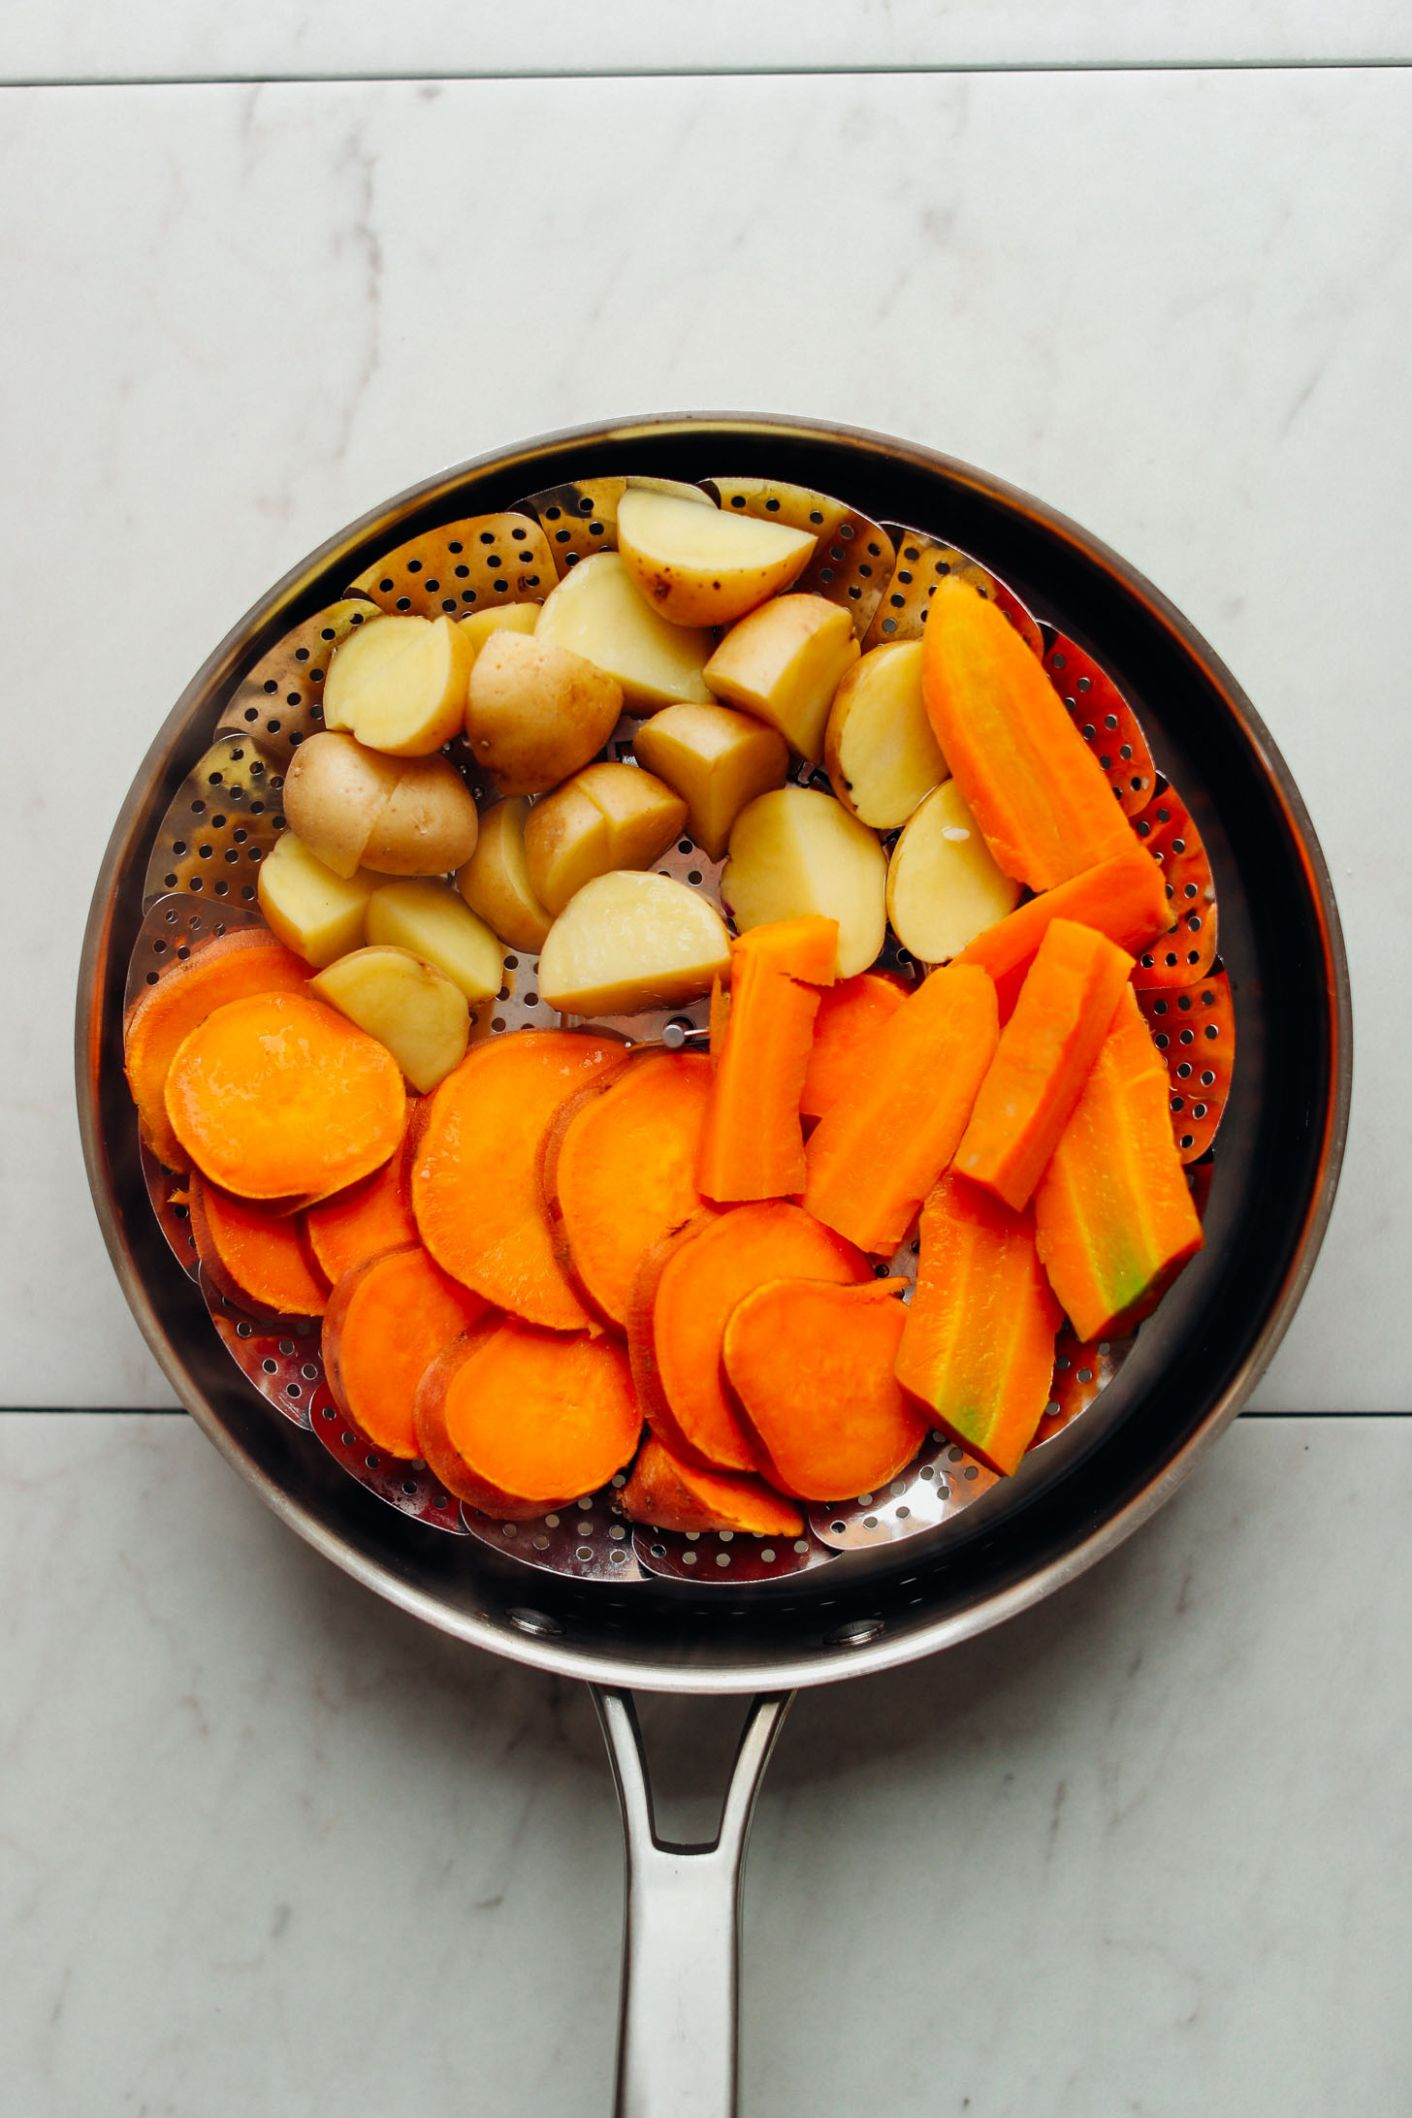 Oil-Free Roasted Vegetables - Vegetable Recipes Without Oil